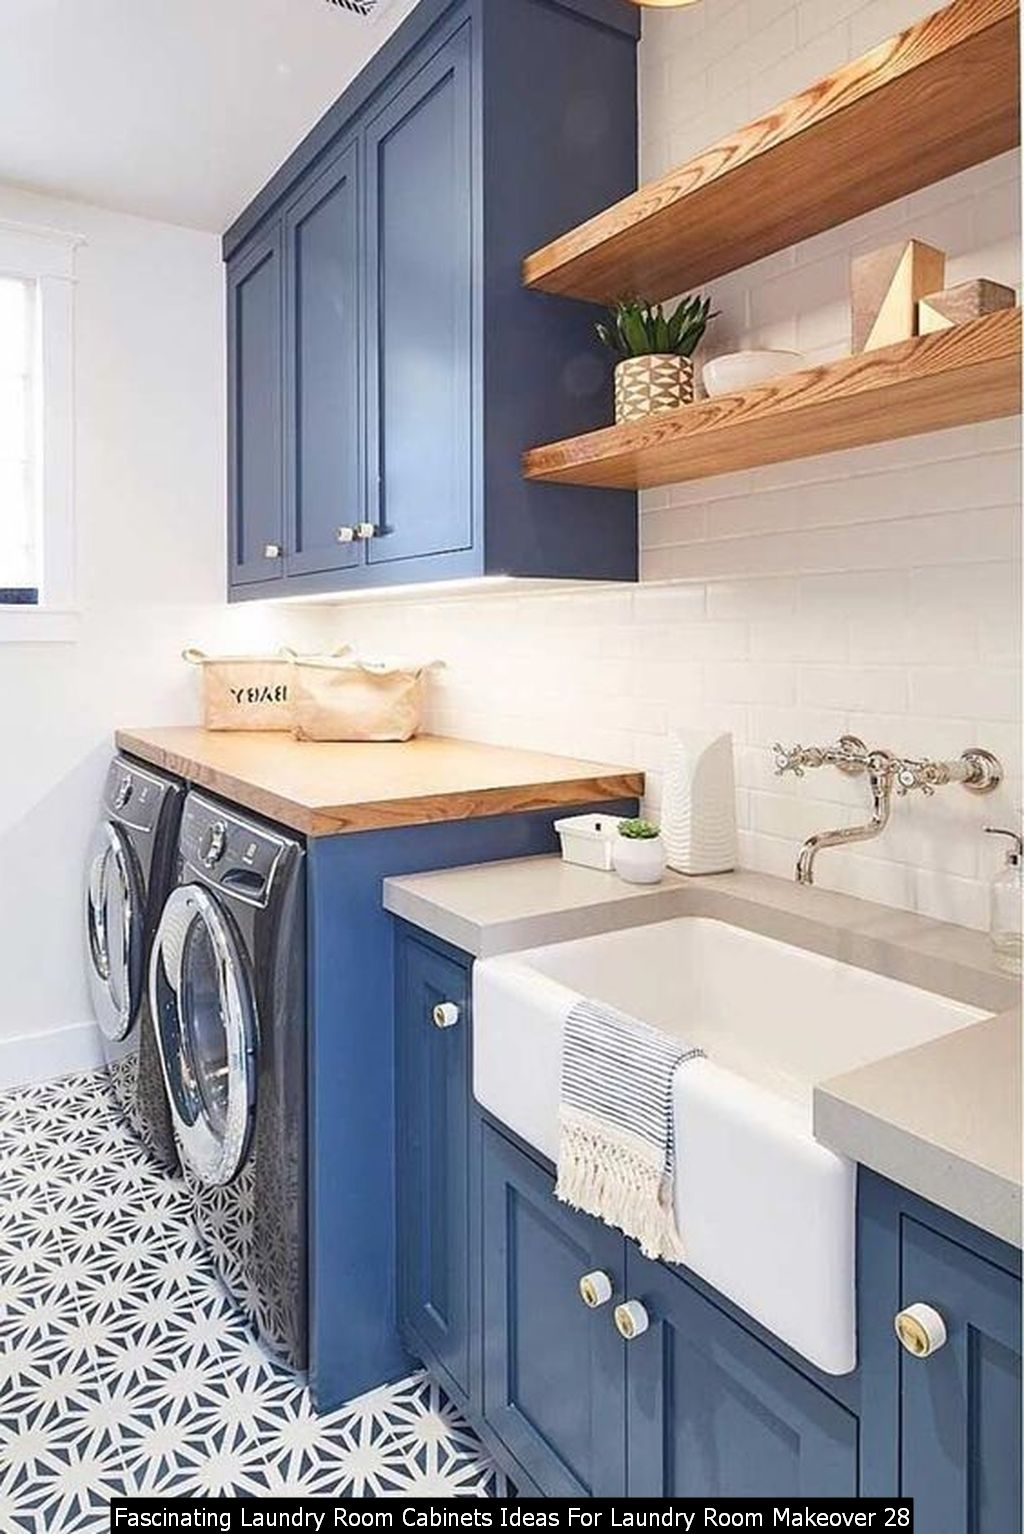 20 Fascinating Laundry Room Cabinets Ideas For Laundry Room Makeover Lovahomy